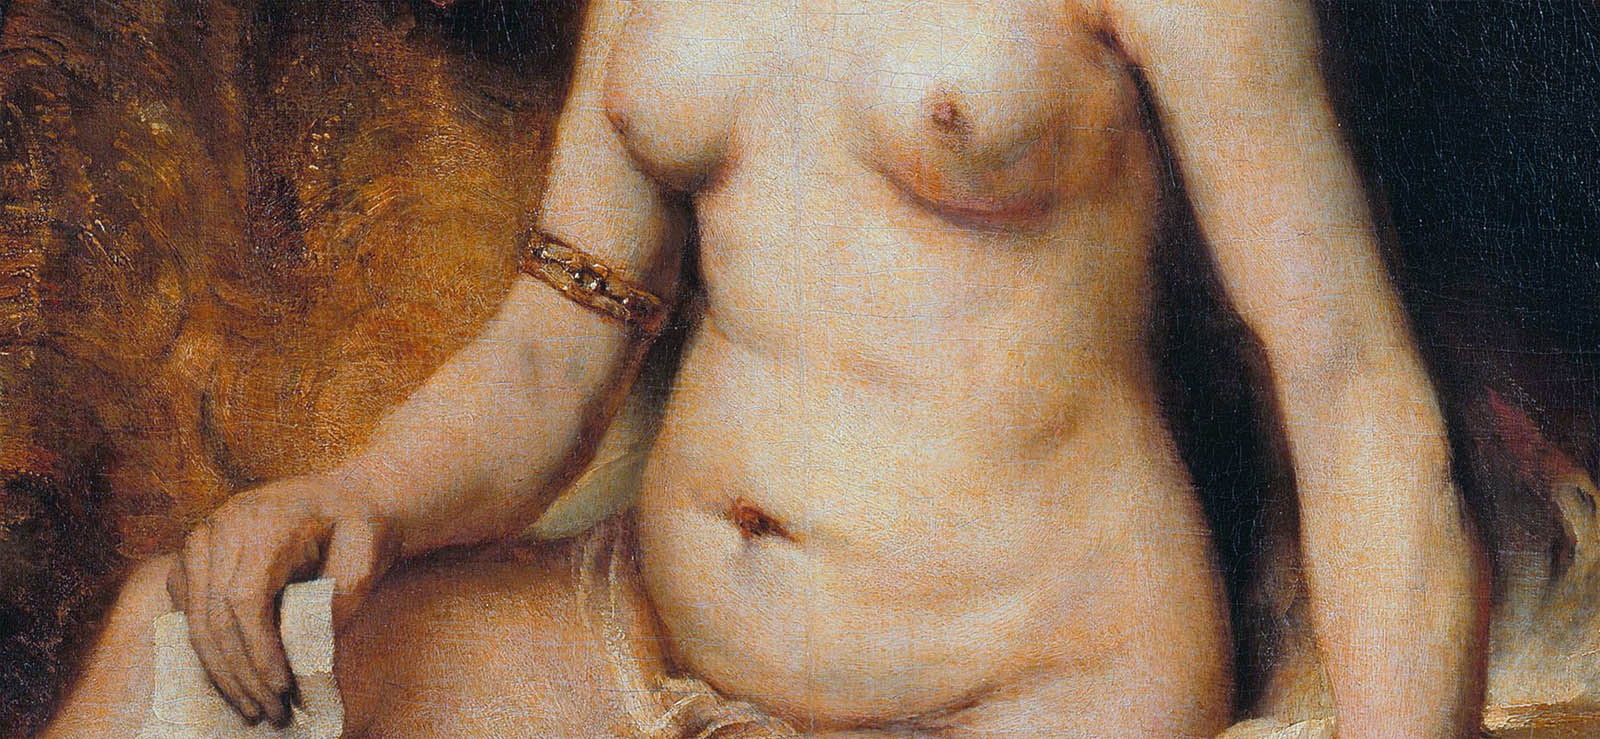 Bathsheba at Her Bath (1654-d-2)